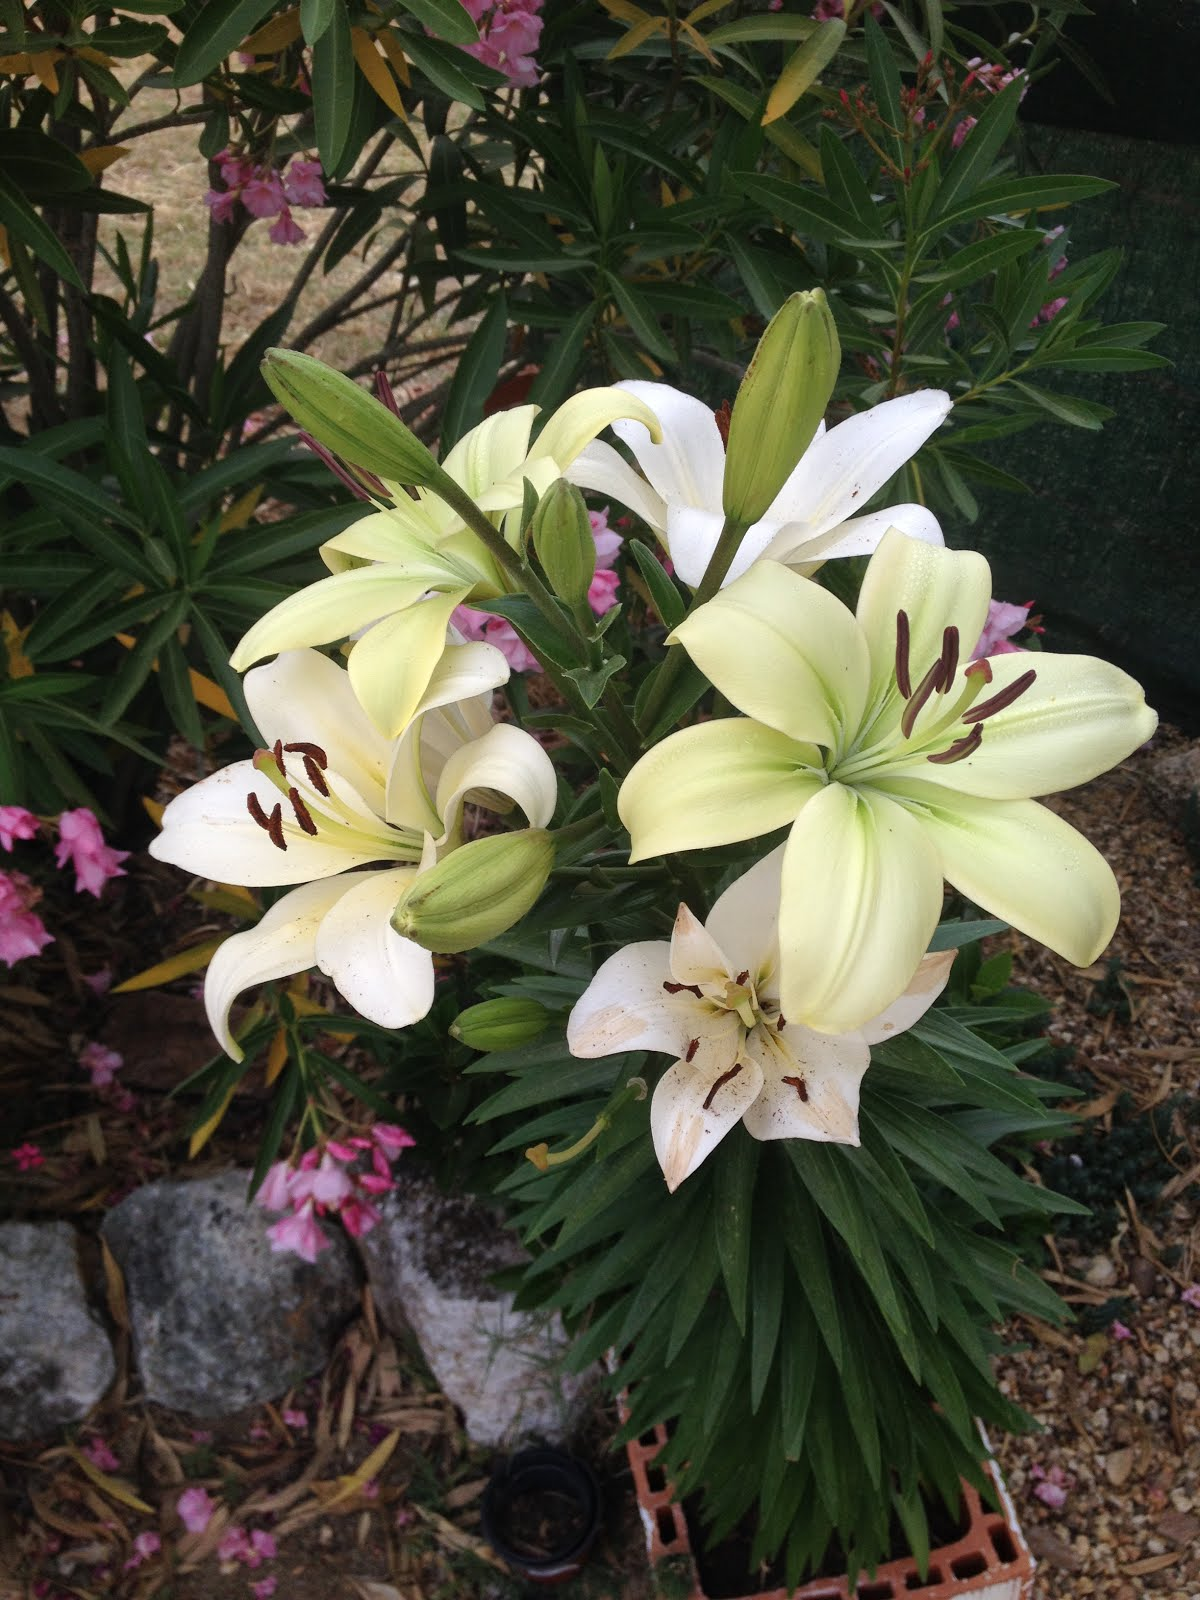 lilies from my garden 2015